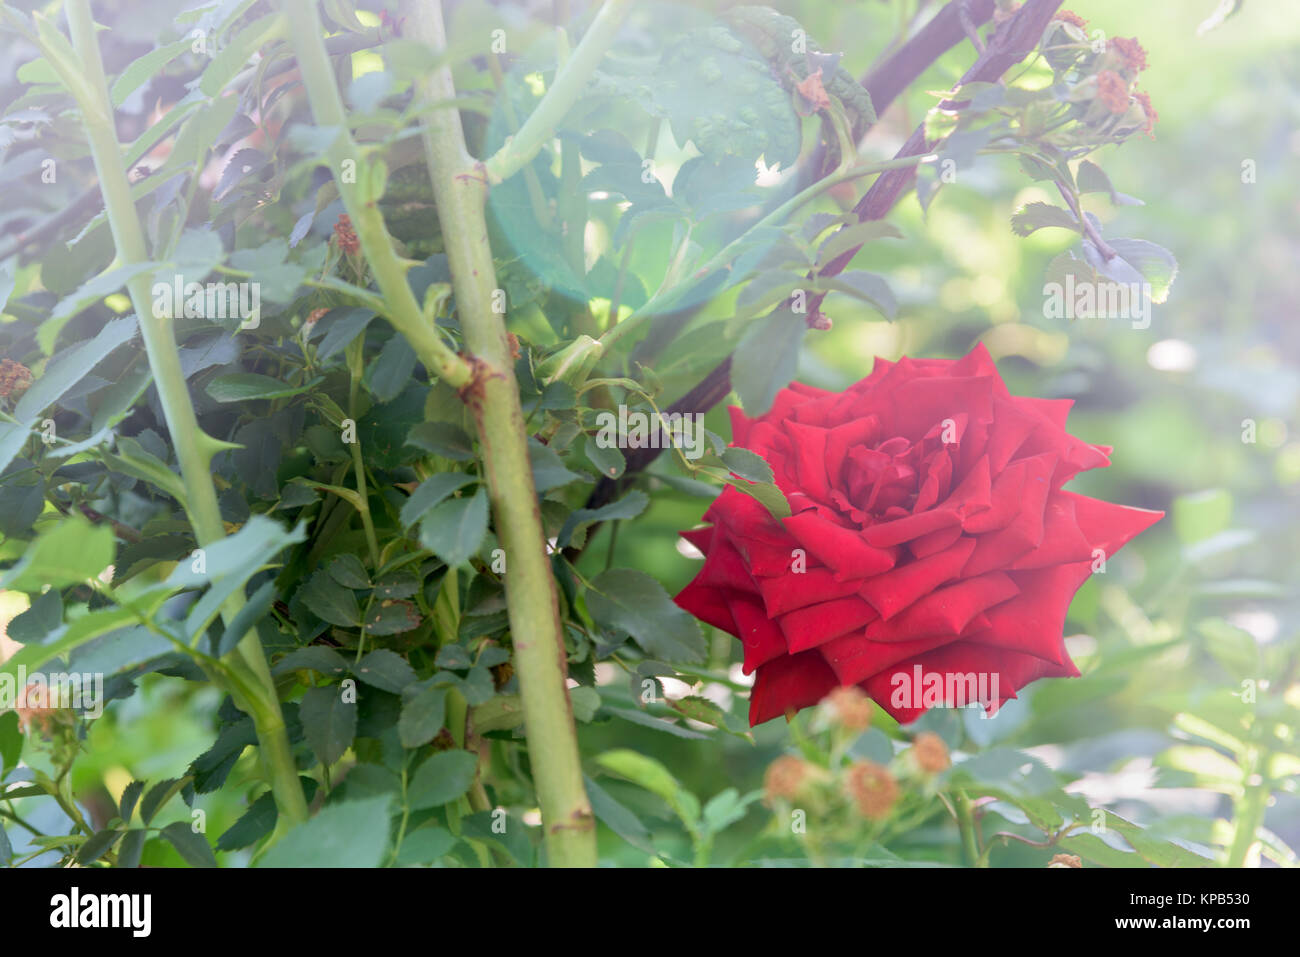 Red rose with sunlight close up - Stock Image